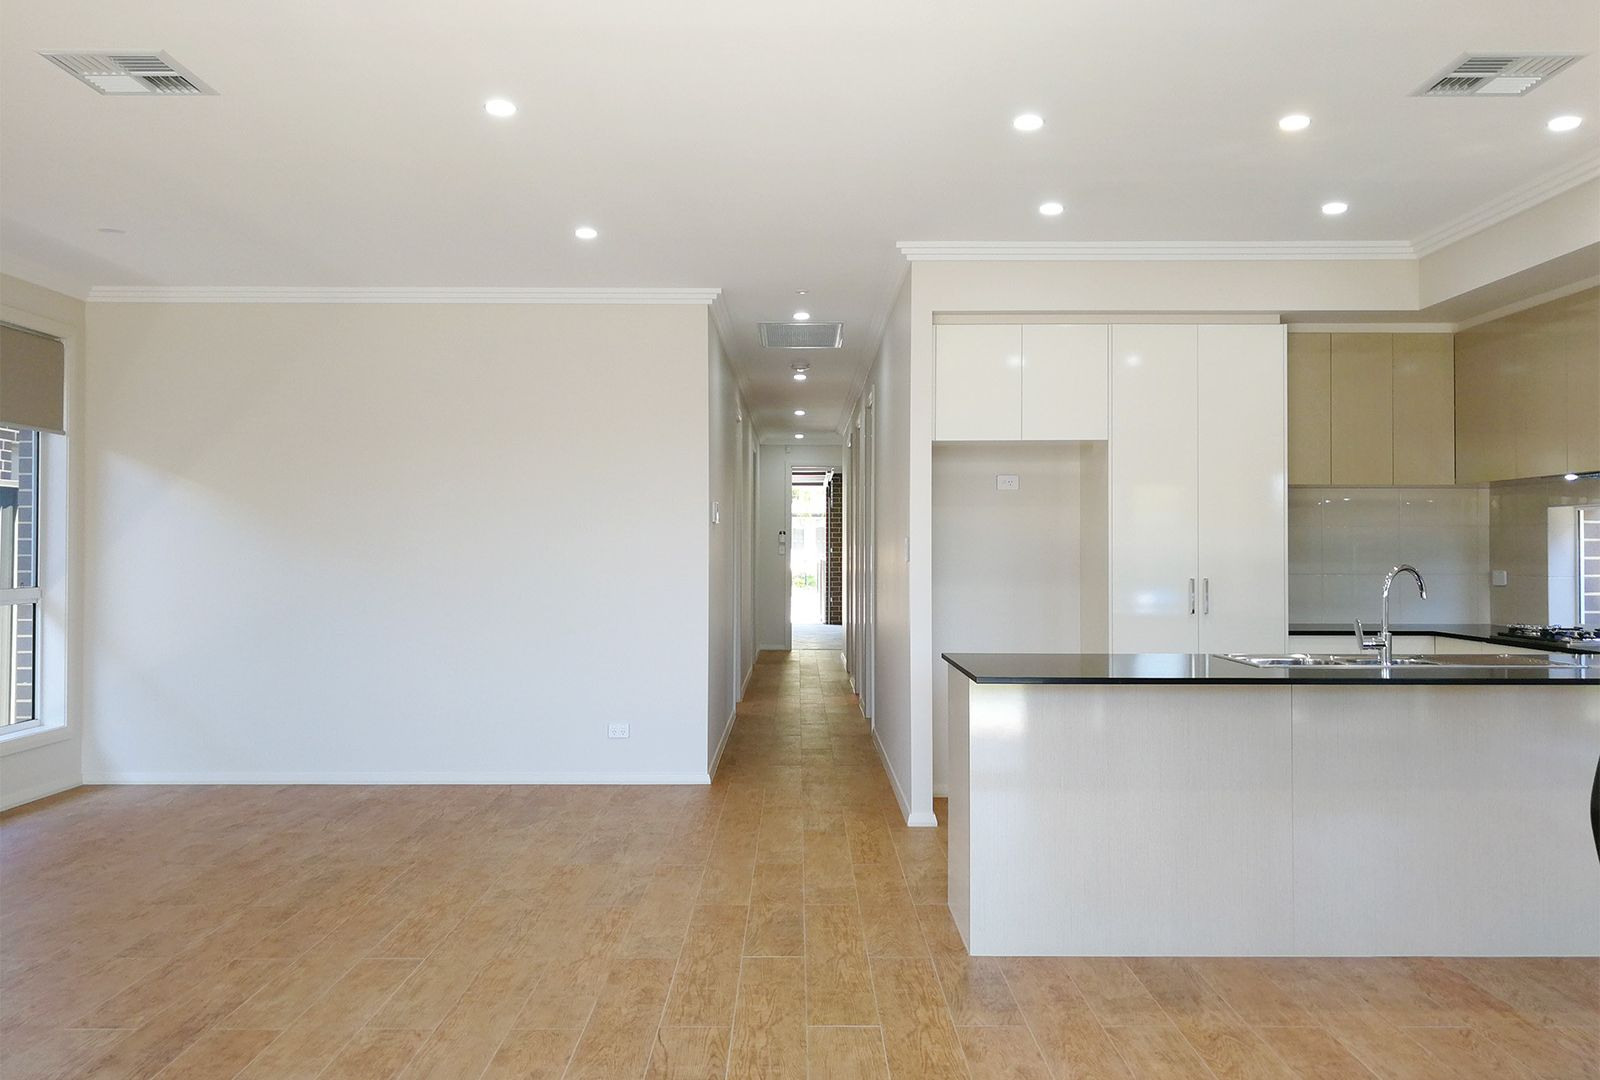 85 B Clairville Rd, Campbelltown SA 5074, Image 2